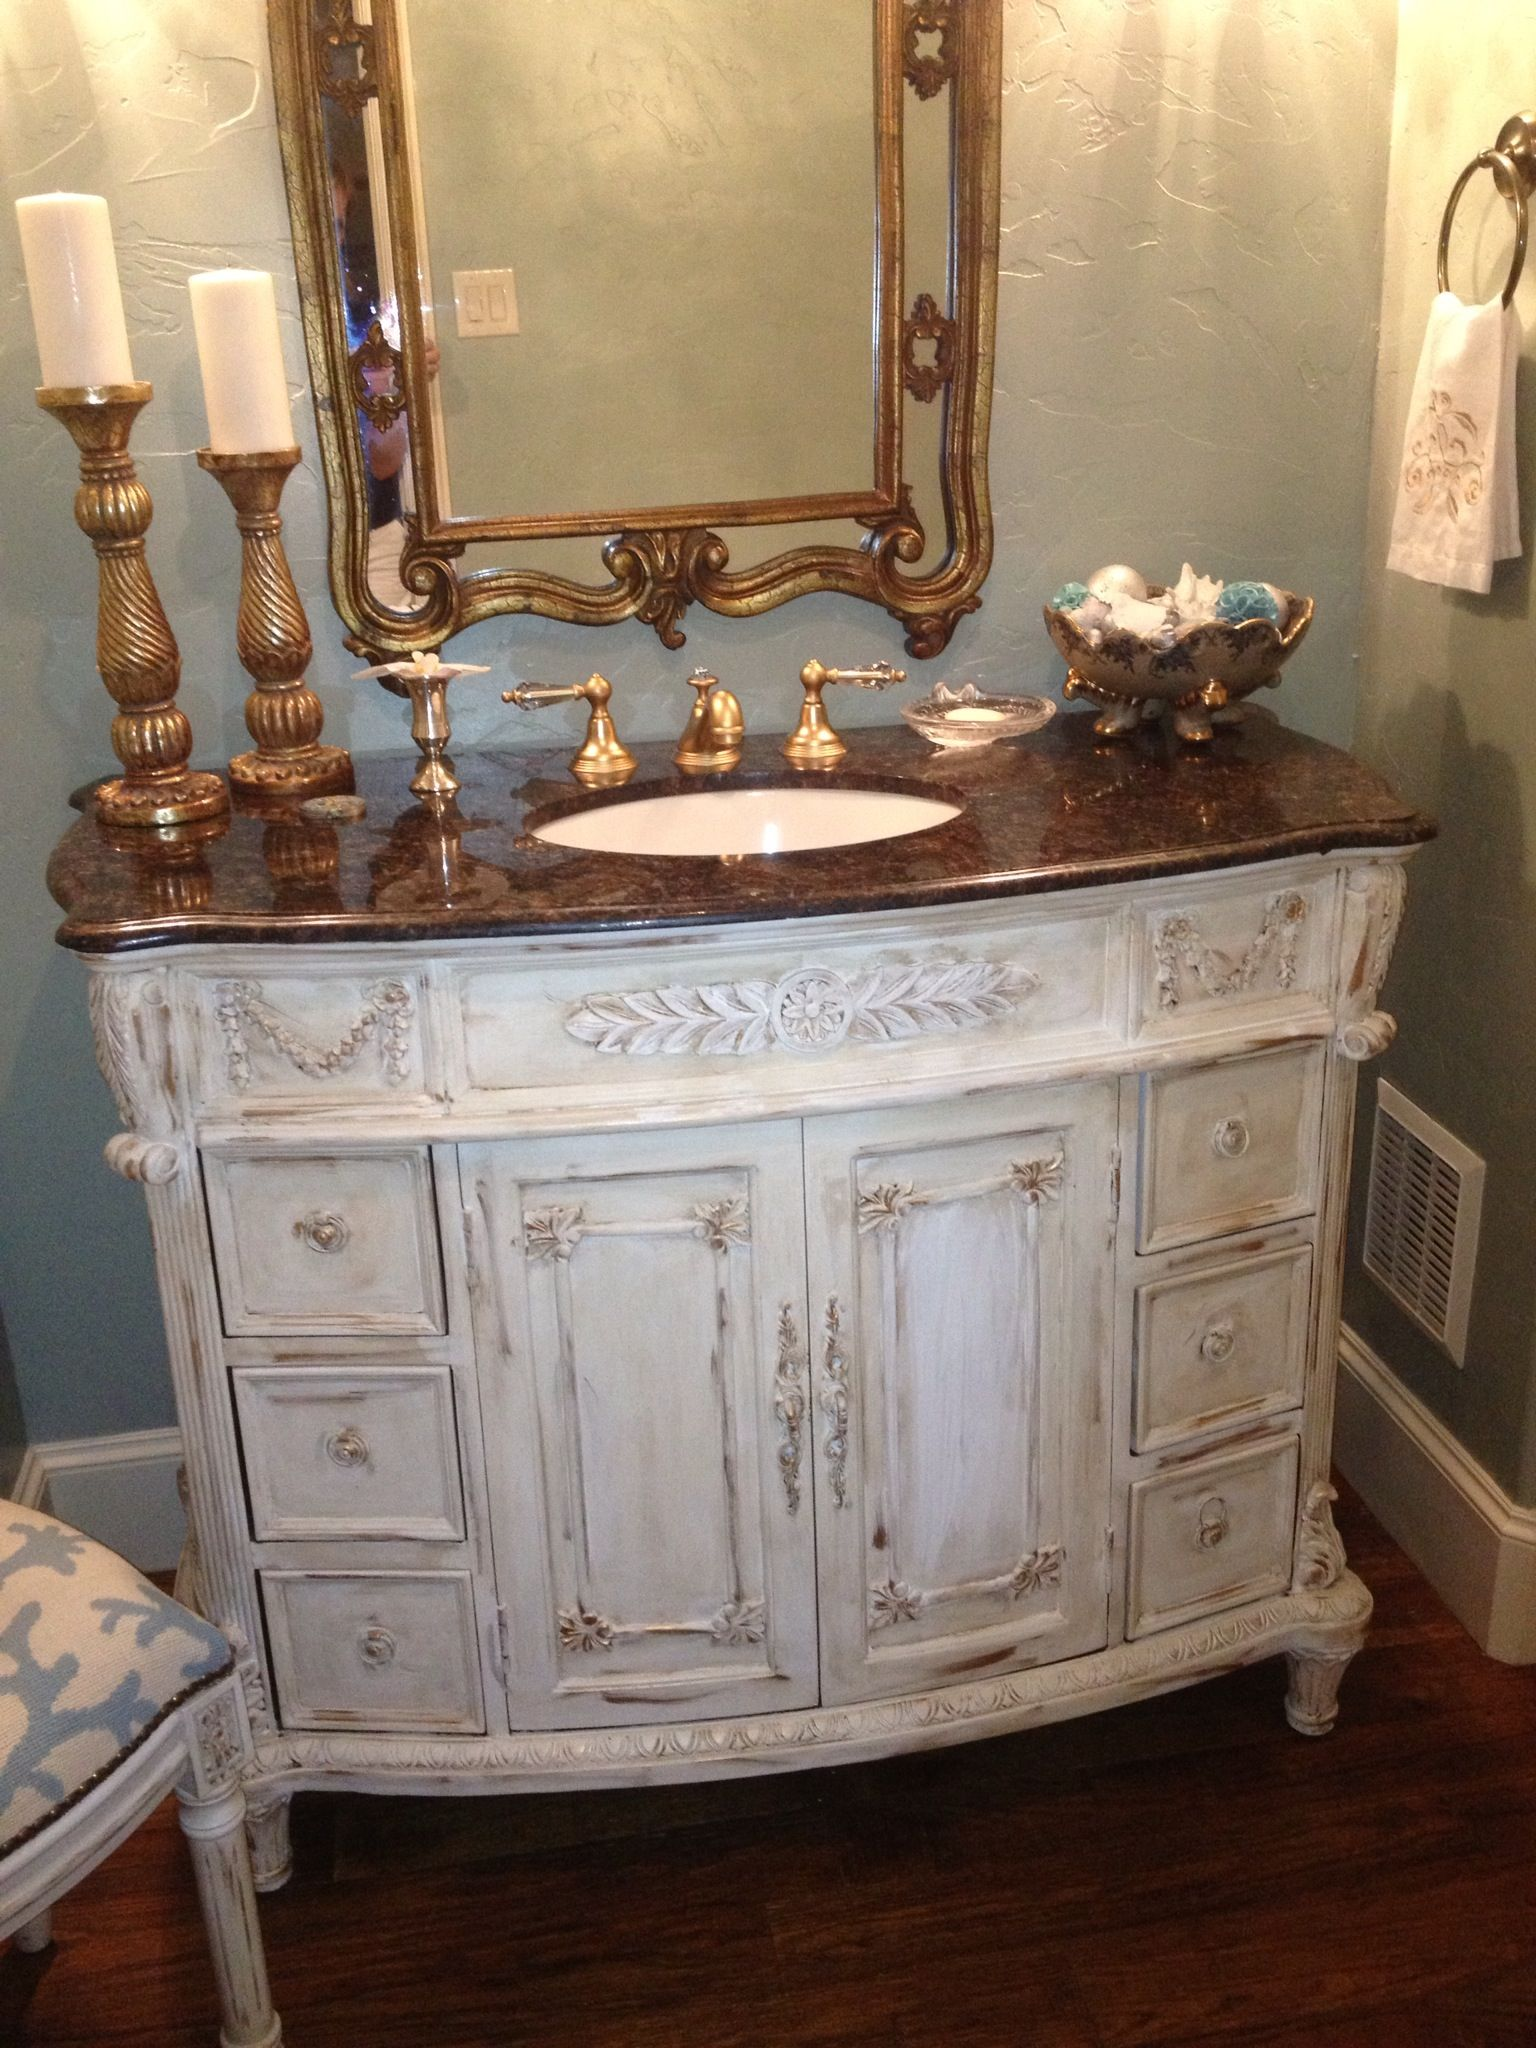 Chalk Paint Bathroom Cabinets Part - 25: Annie Sloan Chalk Paint! Love Having My Dark Wood Vanity Updated.